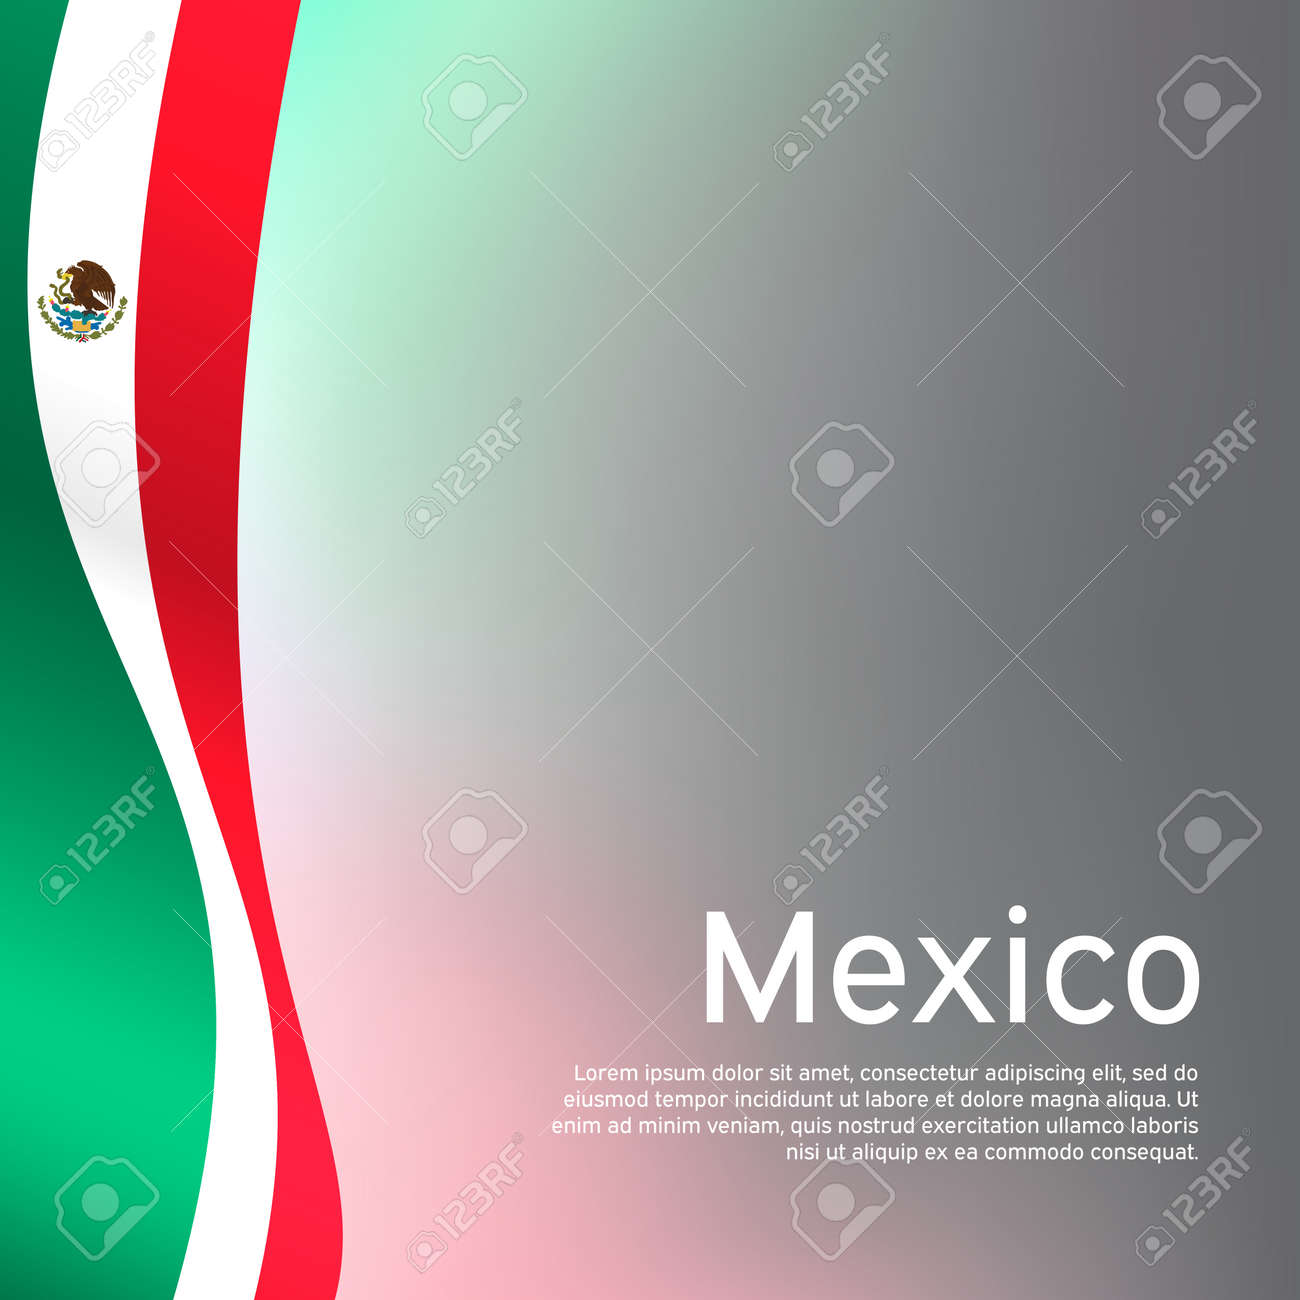 Abstract waving mexico flag. Creative background in mexico flag colors for holiday card design. National Poster. State mexican patriotic cover, business booklet, flyer. Vector tricolor design - 170188445